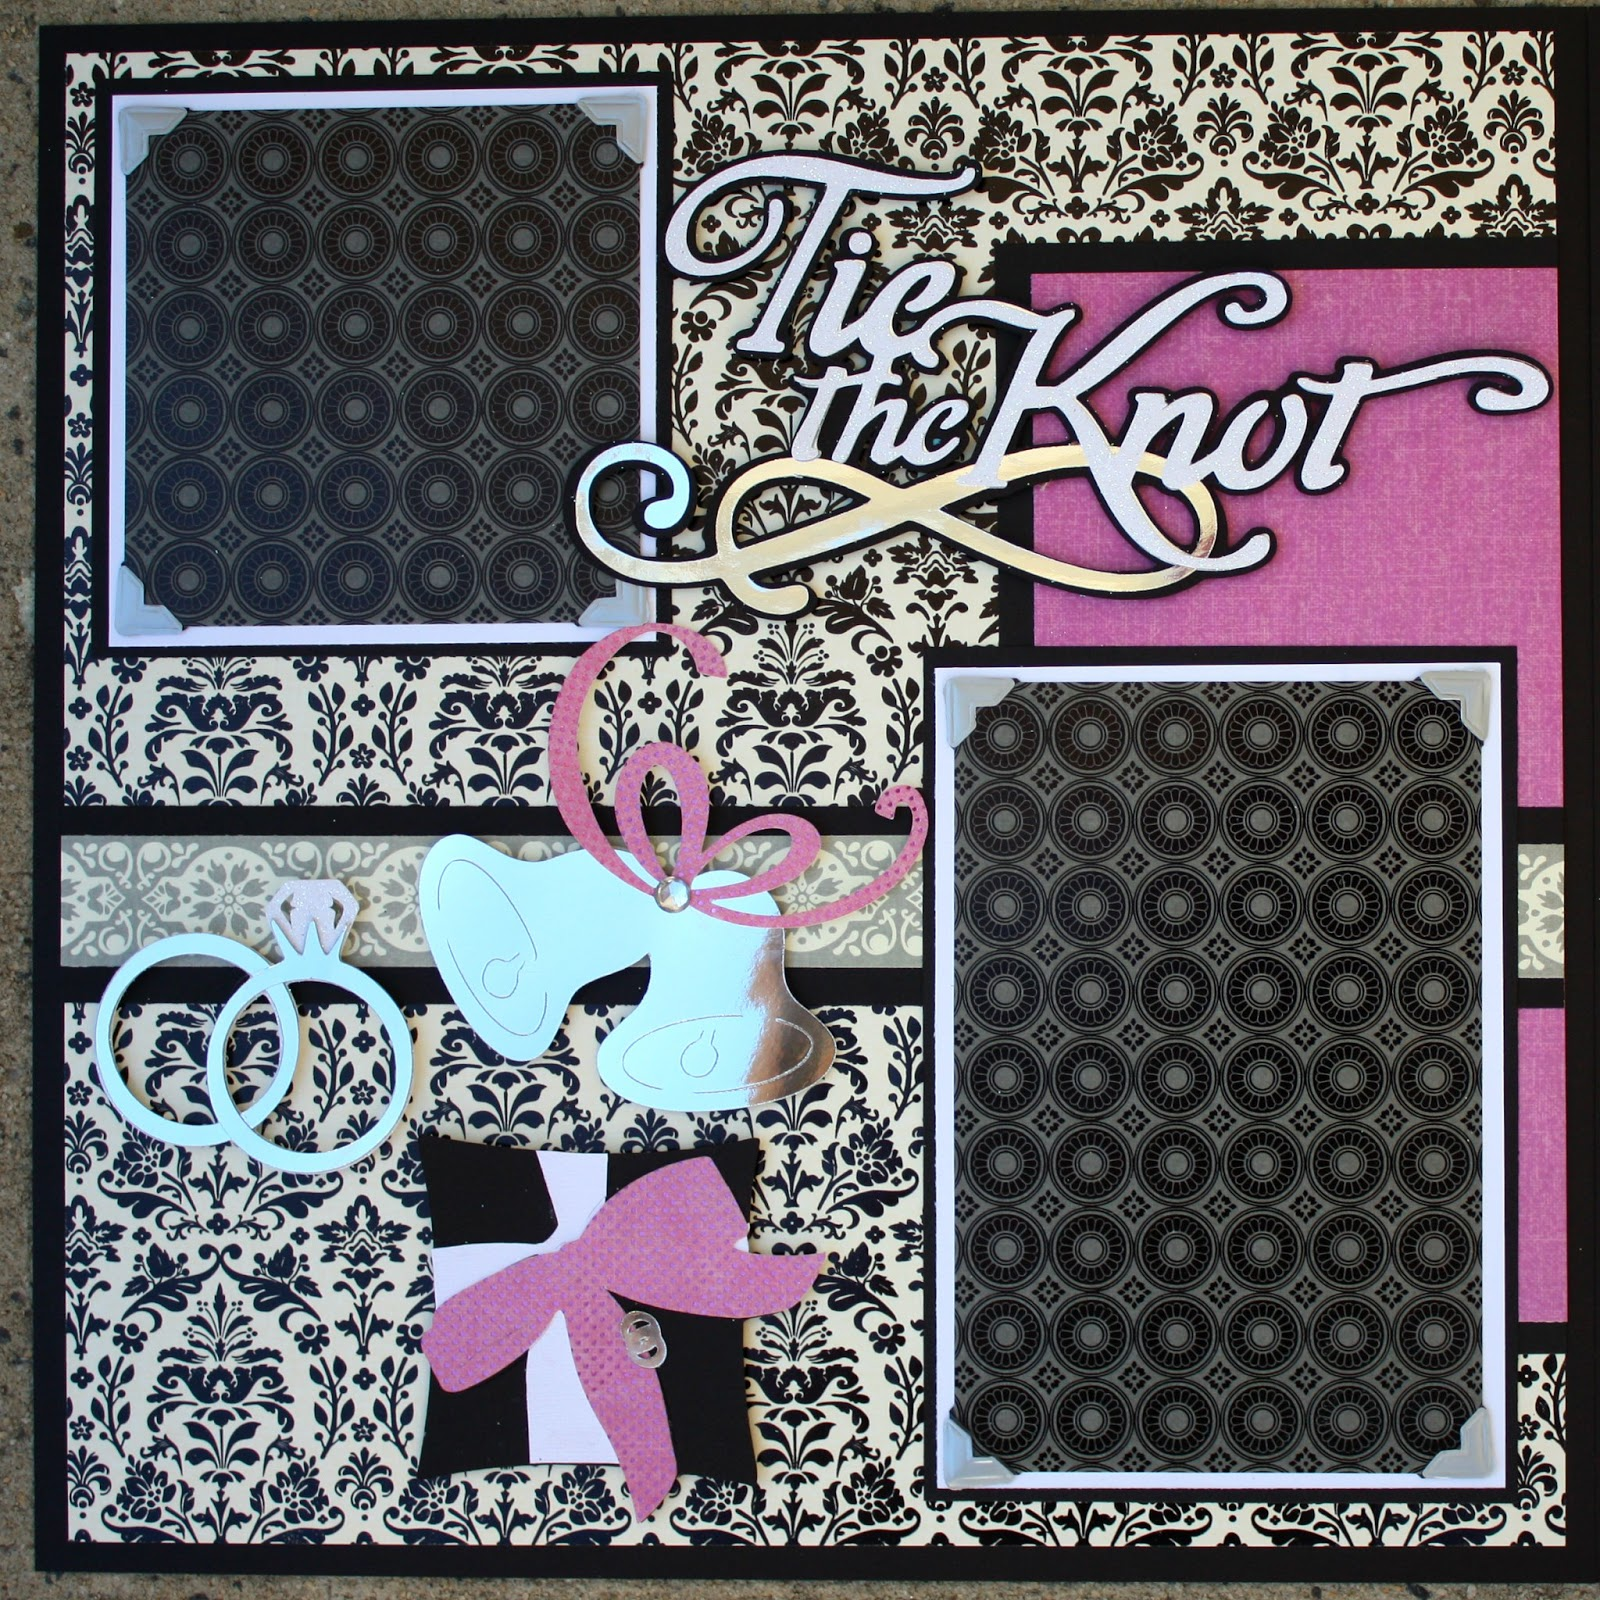 Wedding scrapbook ideas layouts - The Tie The Knot Title Was Cut From The Cricut Tie The Knot Cartridge At 3 5